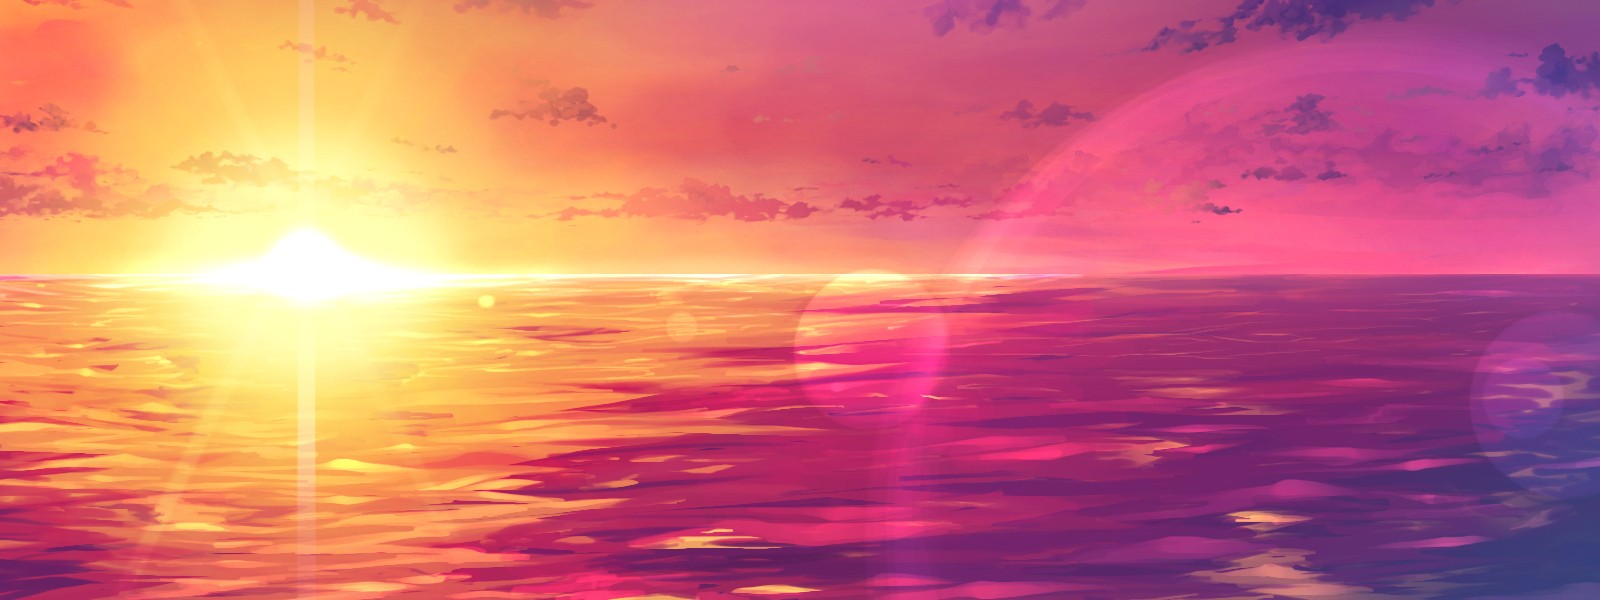 Pink Sunset Backgrounds   HD Wallpapers 1600x600